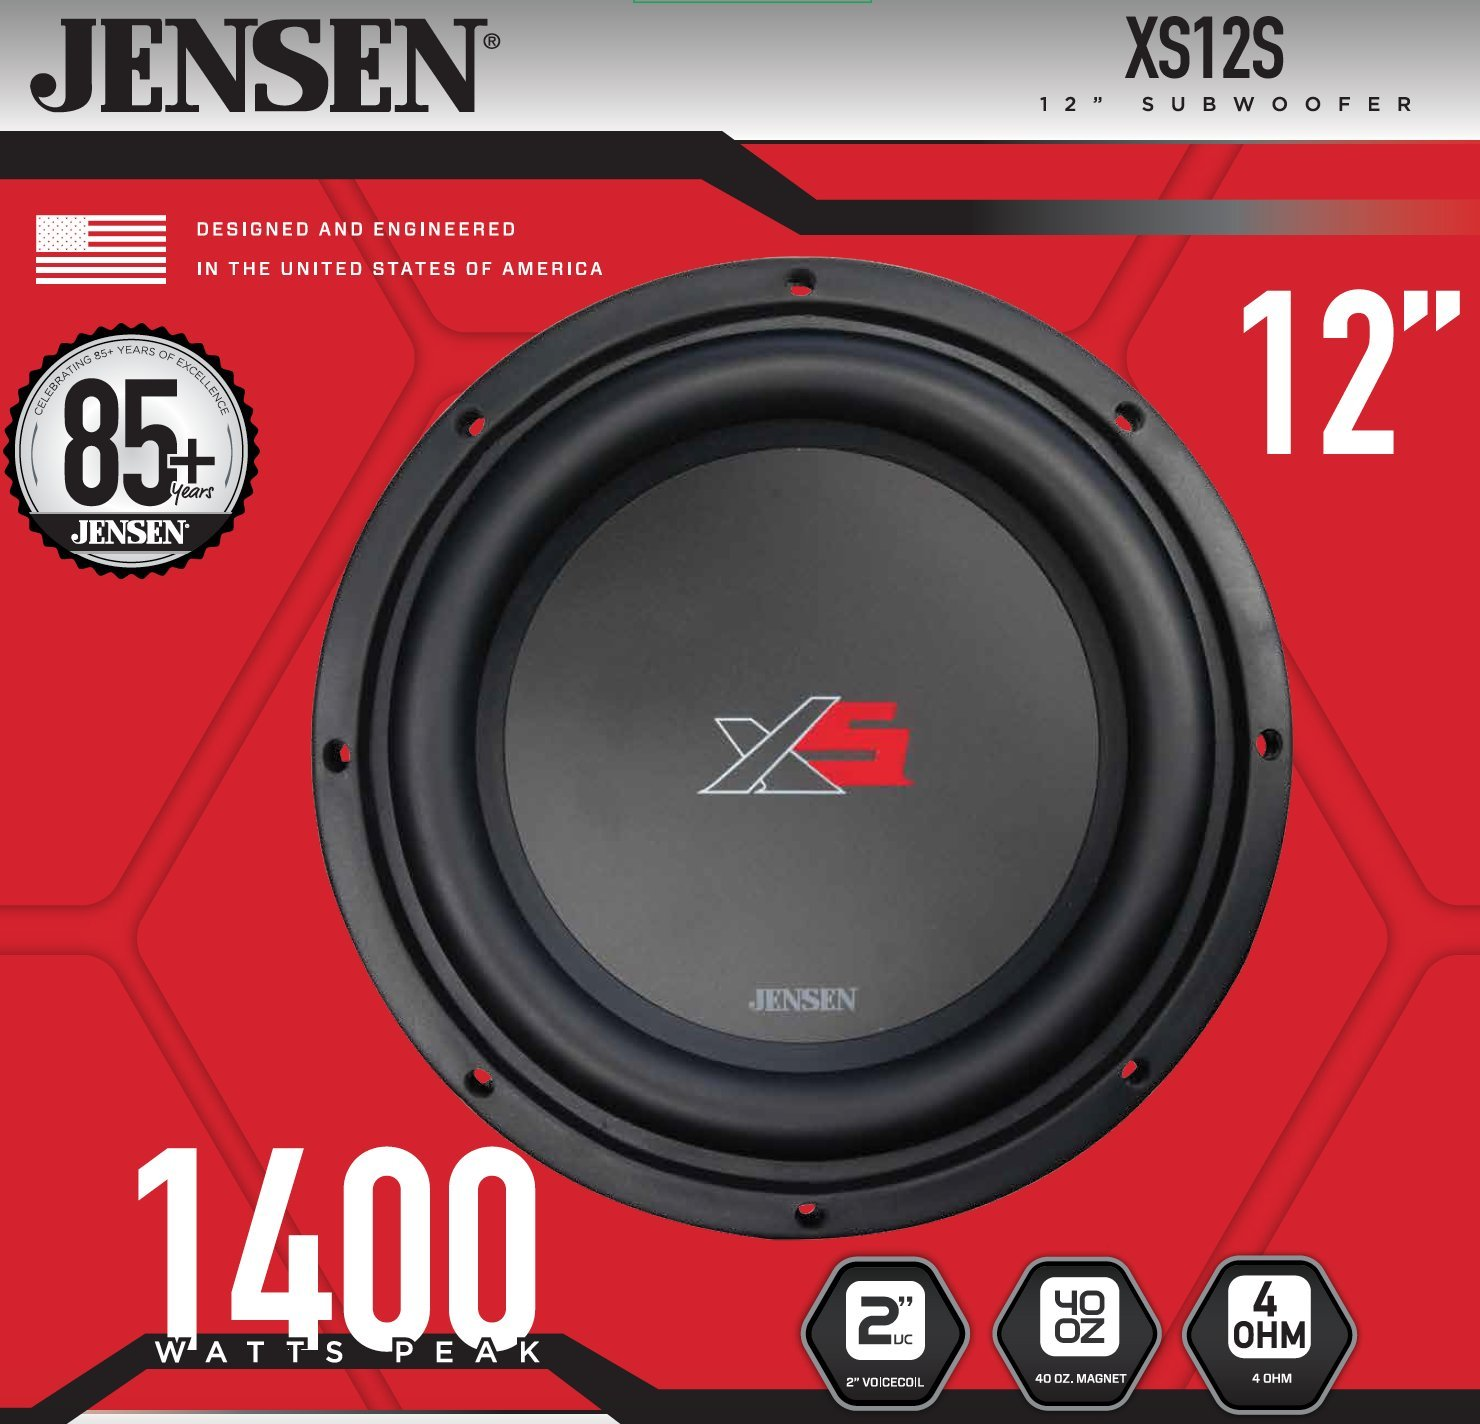 Jensen Xs10 10 Inch High Performance Subwoofer With A 2 Precision Power Wiring Diagram Single Voice Coil And 1000 Watt Peak Cell Phones Accessories